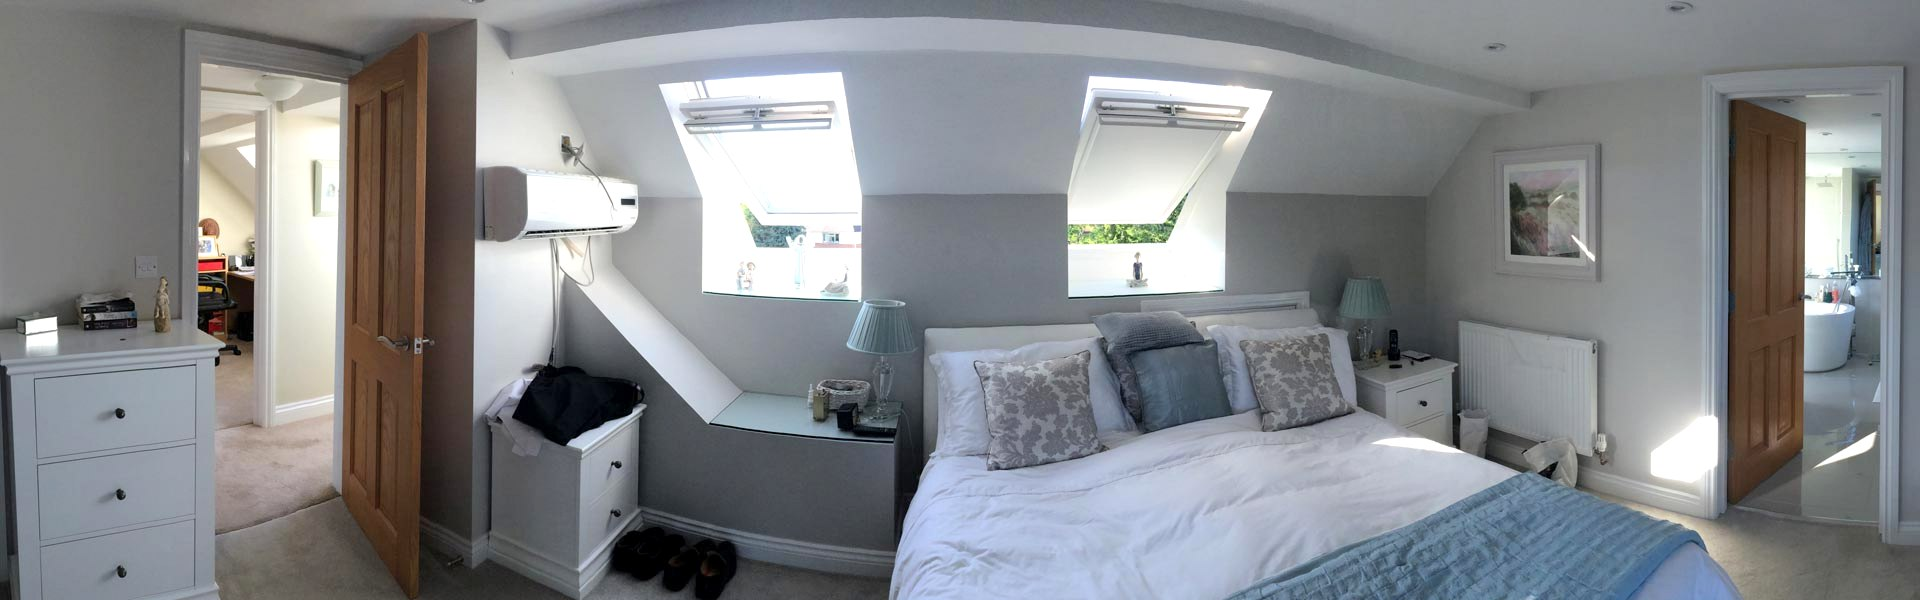 Loft Conversion Bedrooom by Apex Loft Conversions